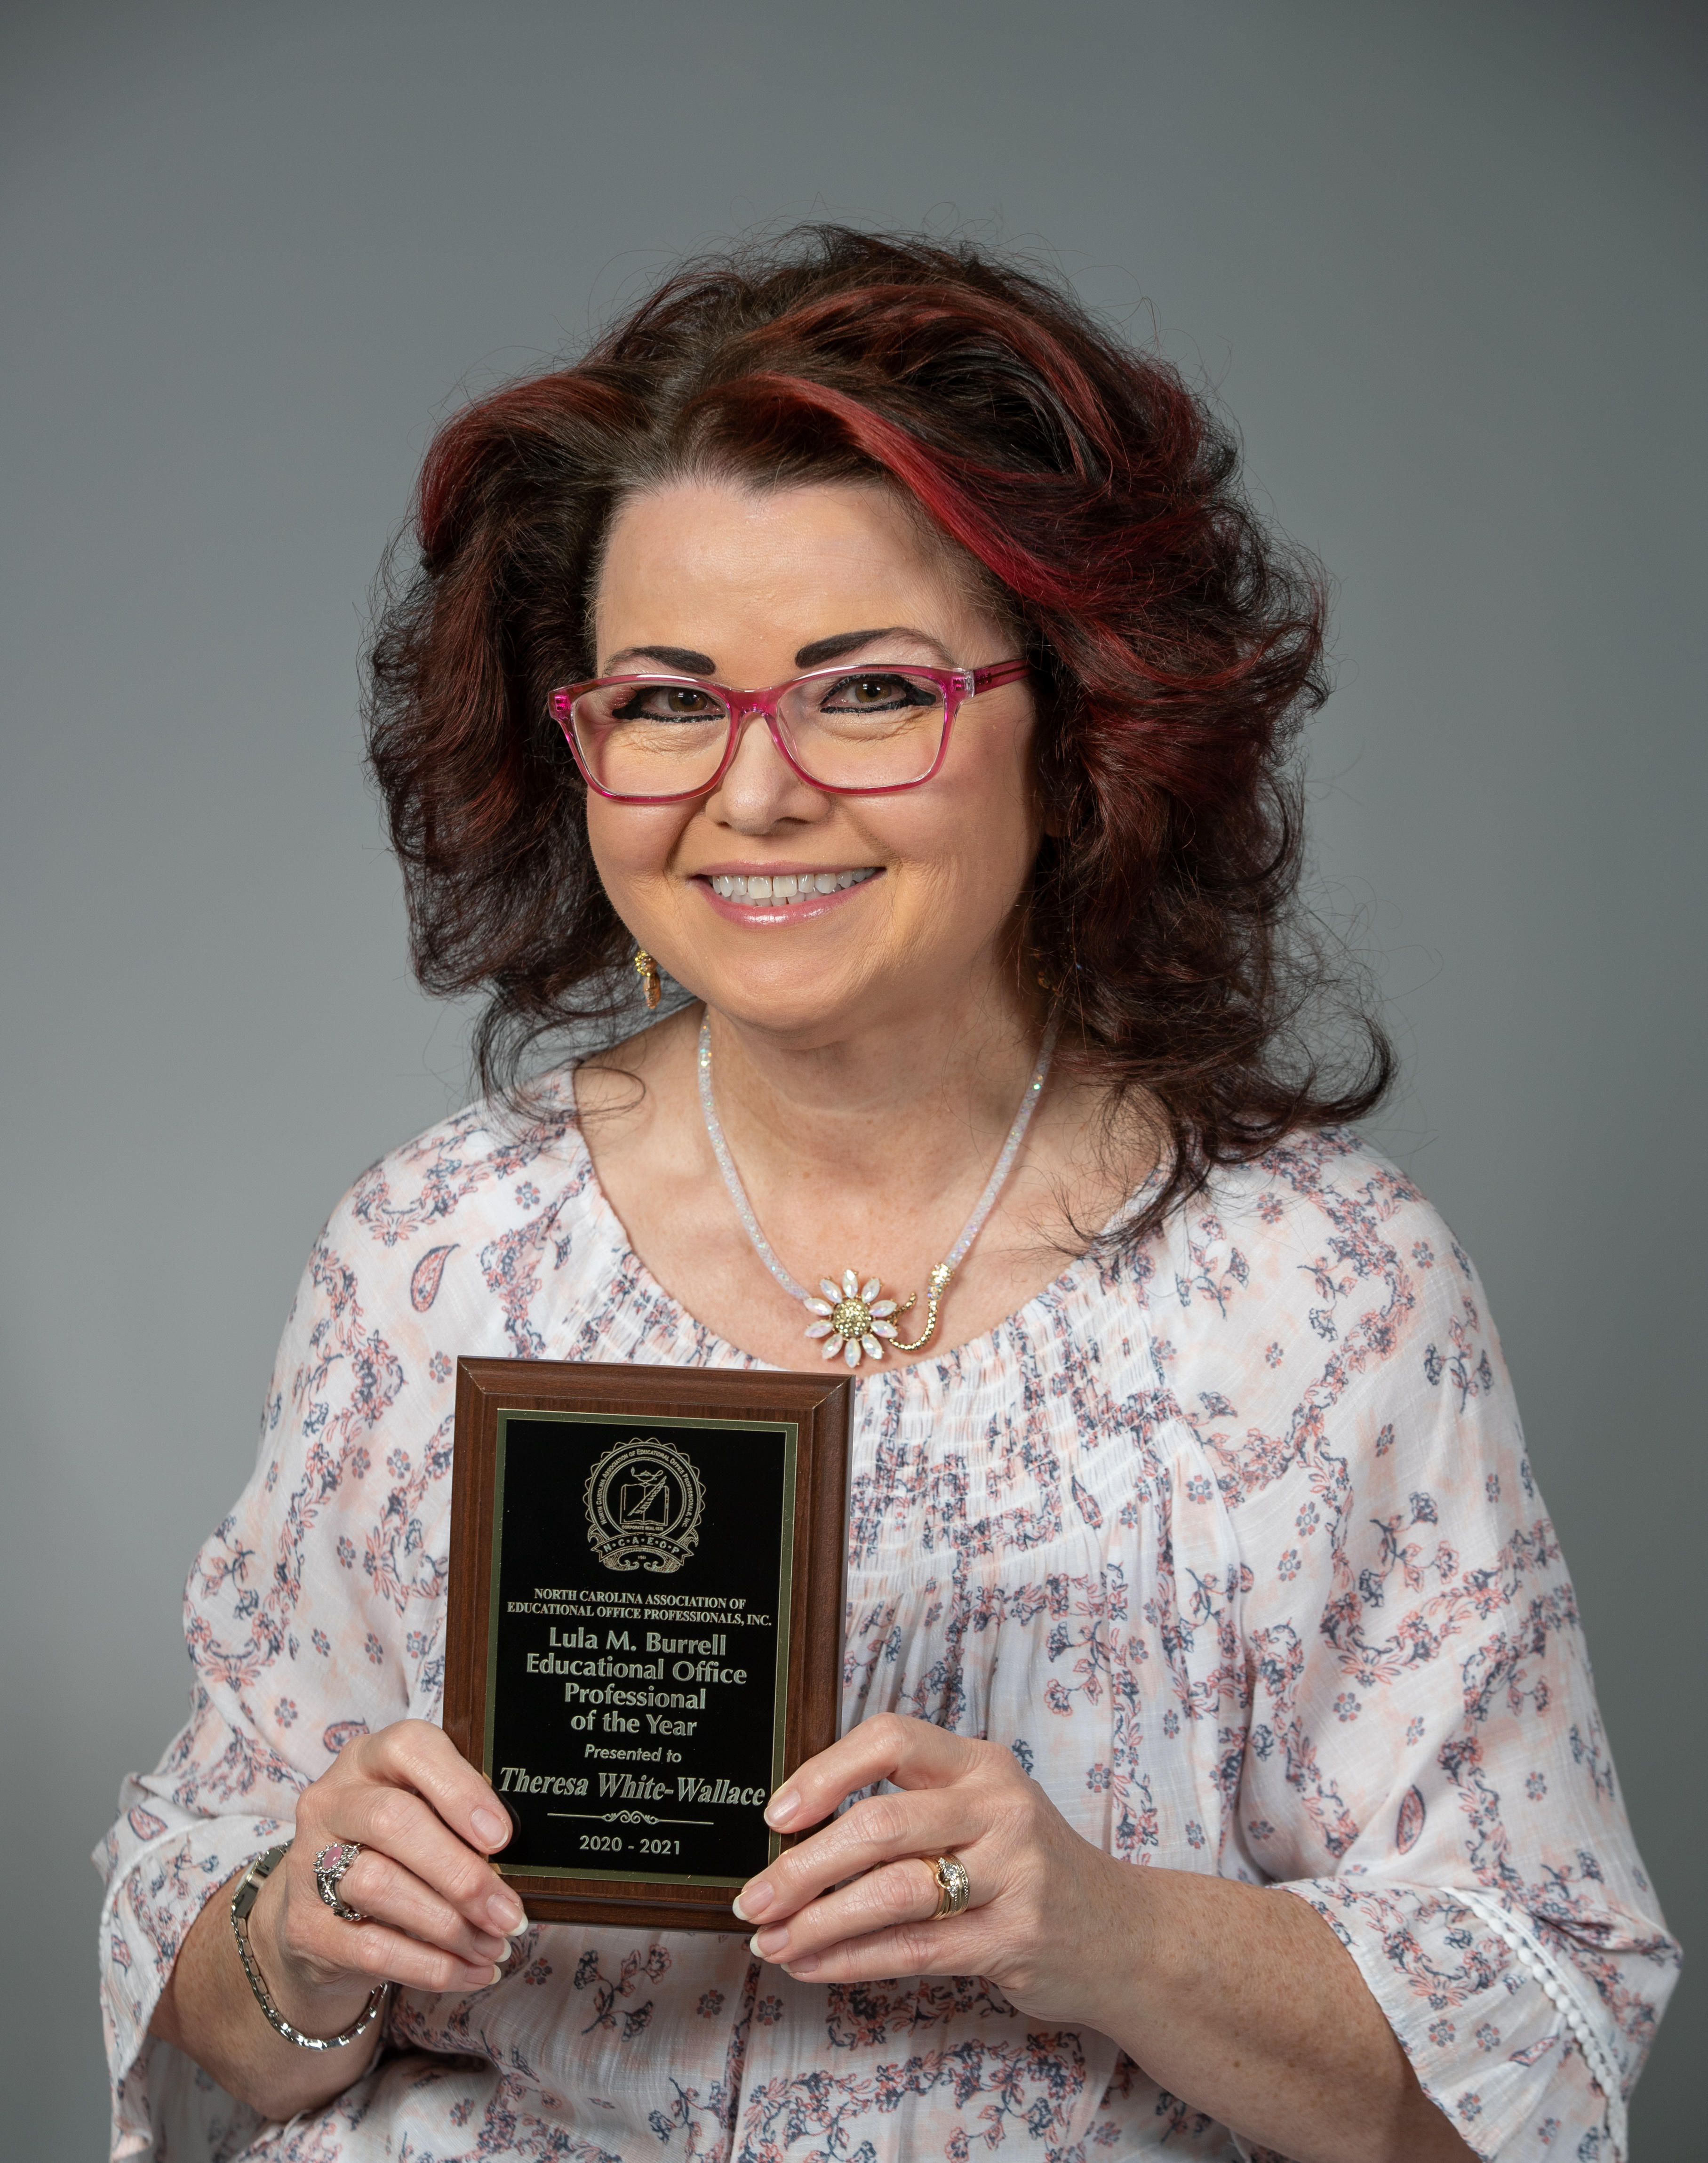 White-Wallace Named State Office Professional Of The Year